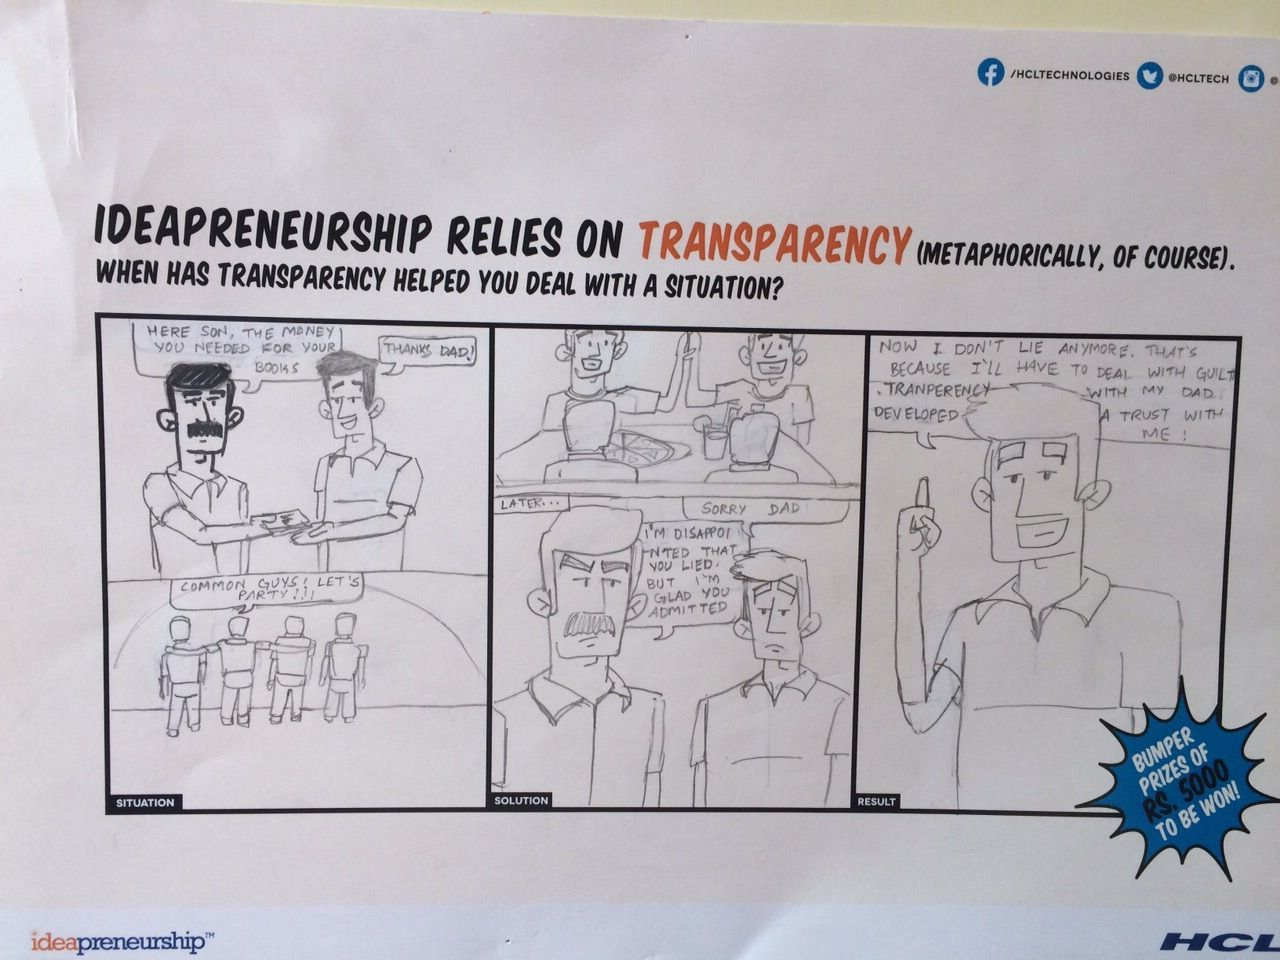 To know more about #ideapreneurship click on the link - www.hcltech.com/ideapreneurship #ComicCon #art #intrapreneurship #employerbranding #B2Bbranding  #IT